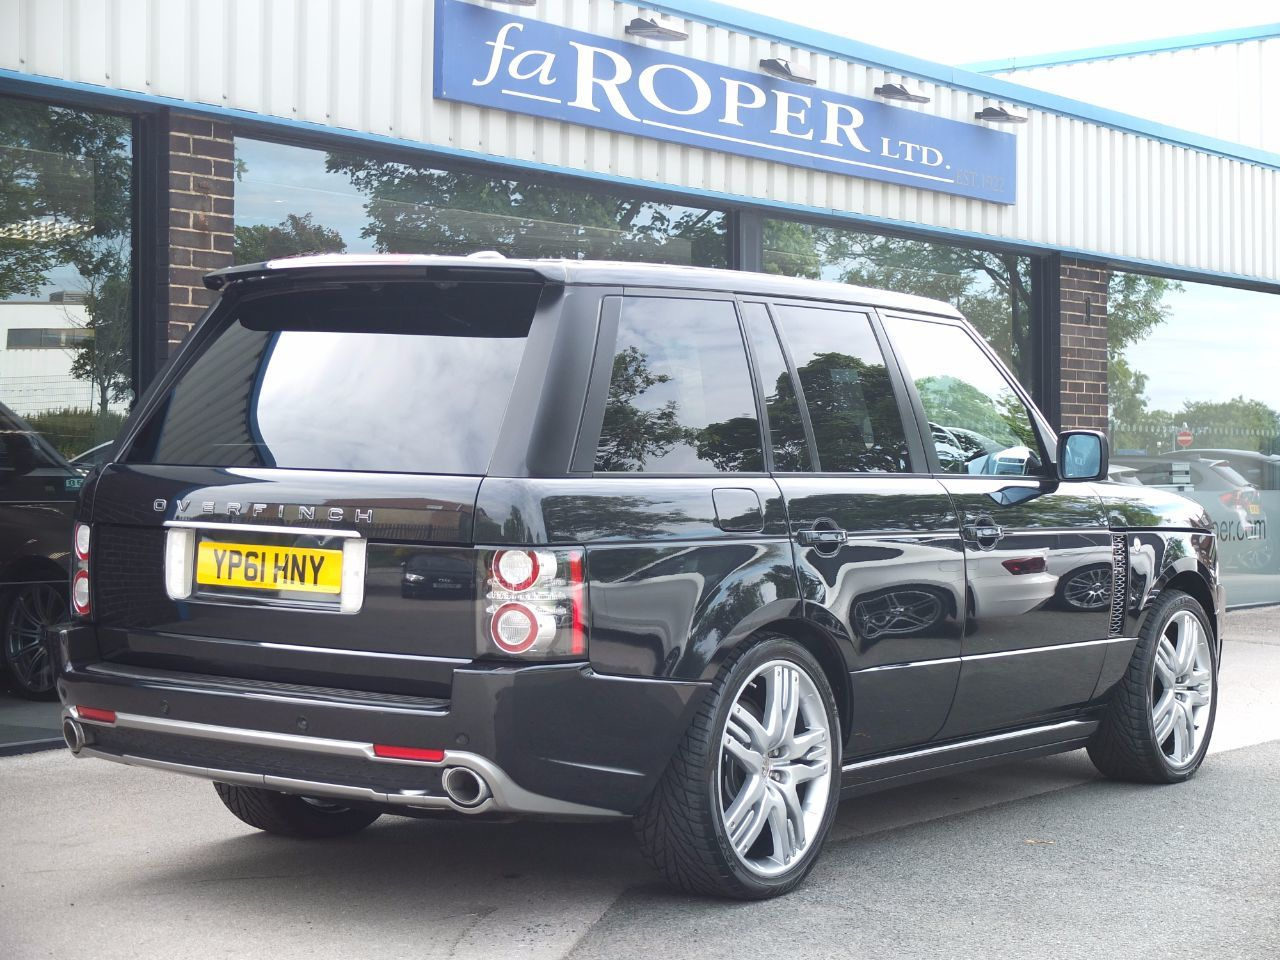 Land Rover Range Rover 4.4 TDV8 Vogue OVERFINCH GT AERO Estate Diesel Santorini Black Metallic